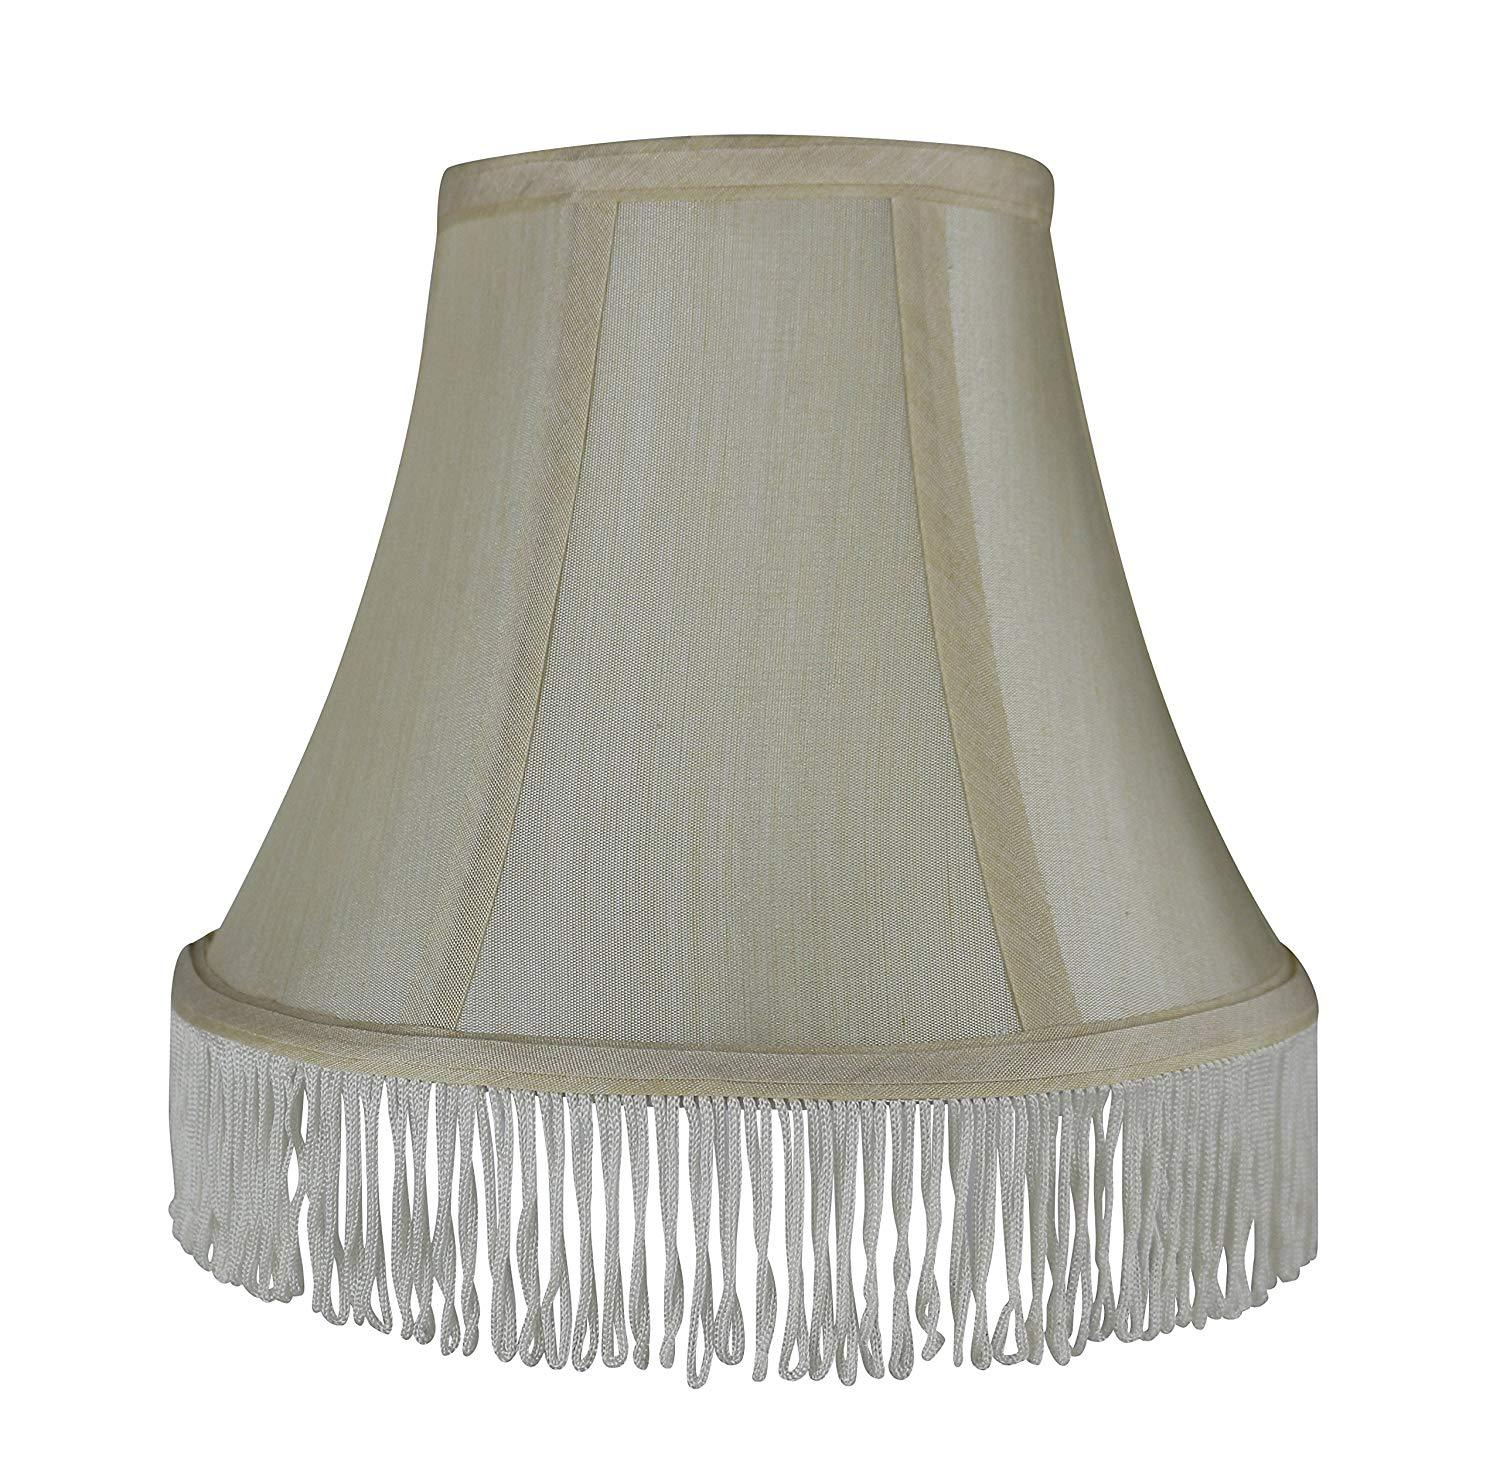 Silk Bell Lamp Shade with Fringe, Spider-fitter, 5-inch by 9-inch by 7-inch